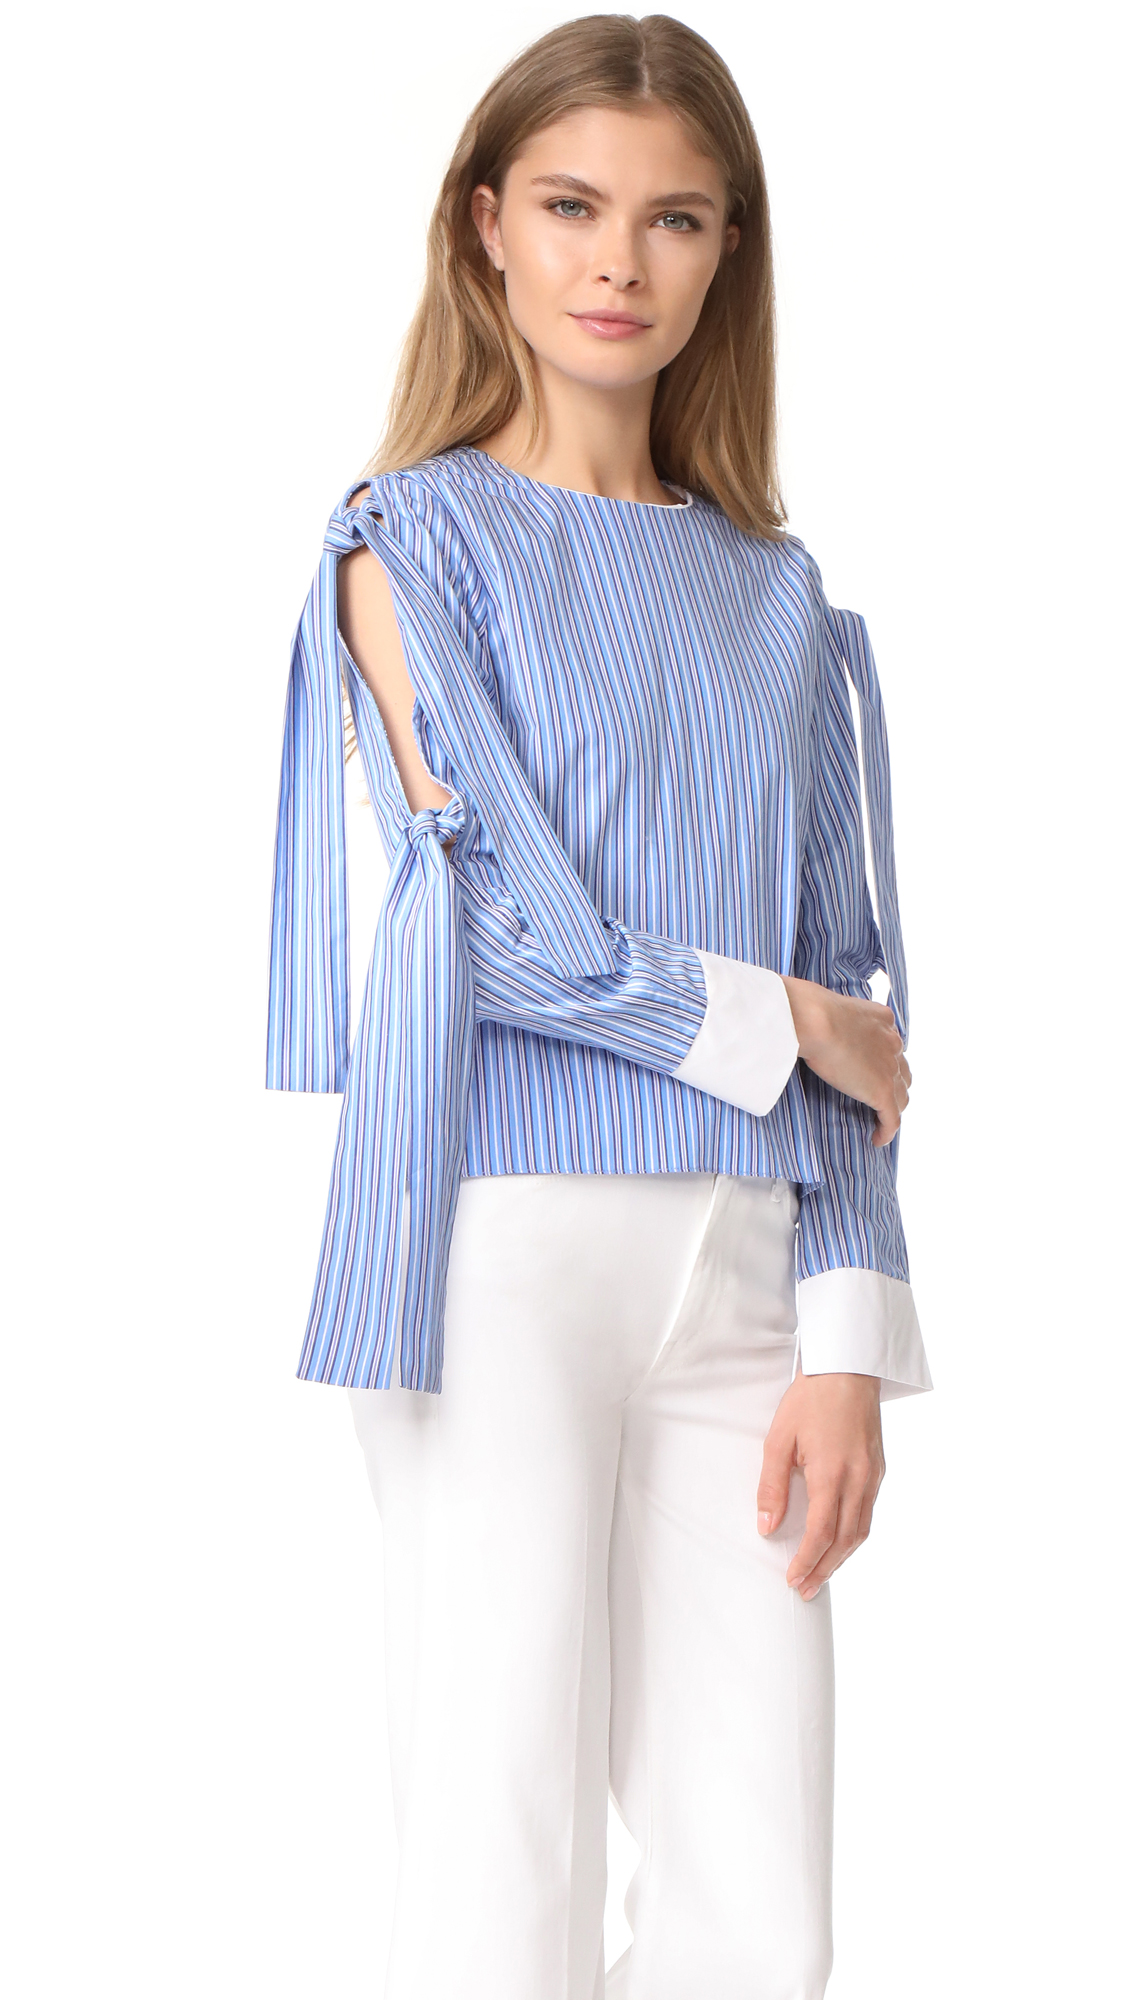 ENGLISH FACTORY Tie Sleeve Blouse - Sky Blue